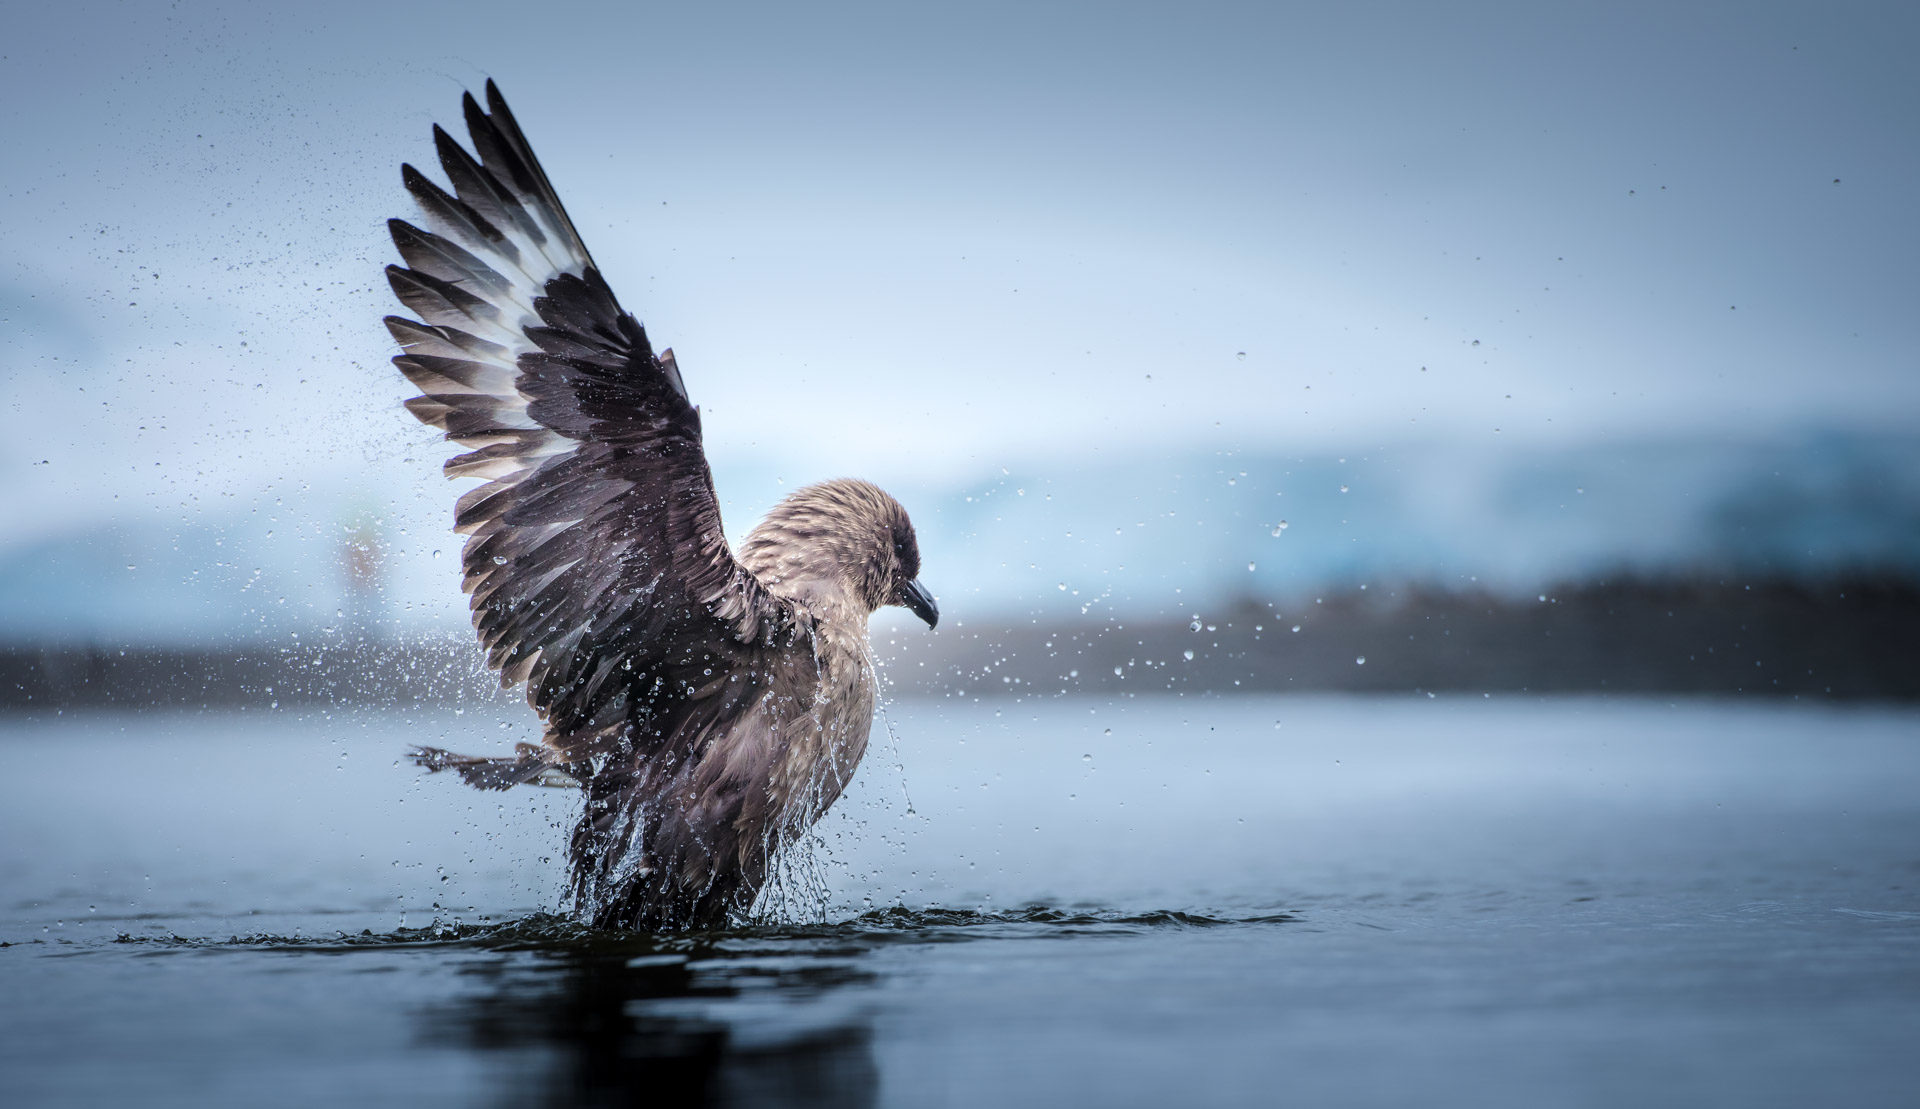 Profile picture of a Skua sea bird, photographed by Ruslan Eliseev, for Antarctica21.